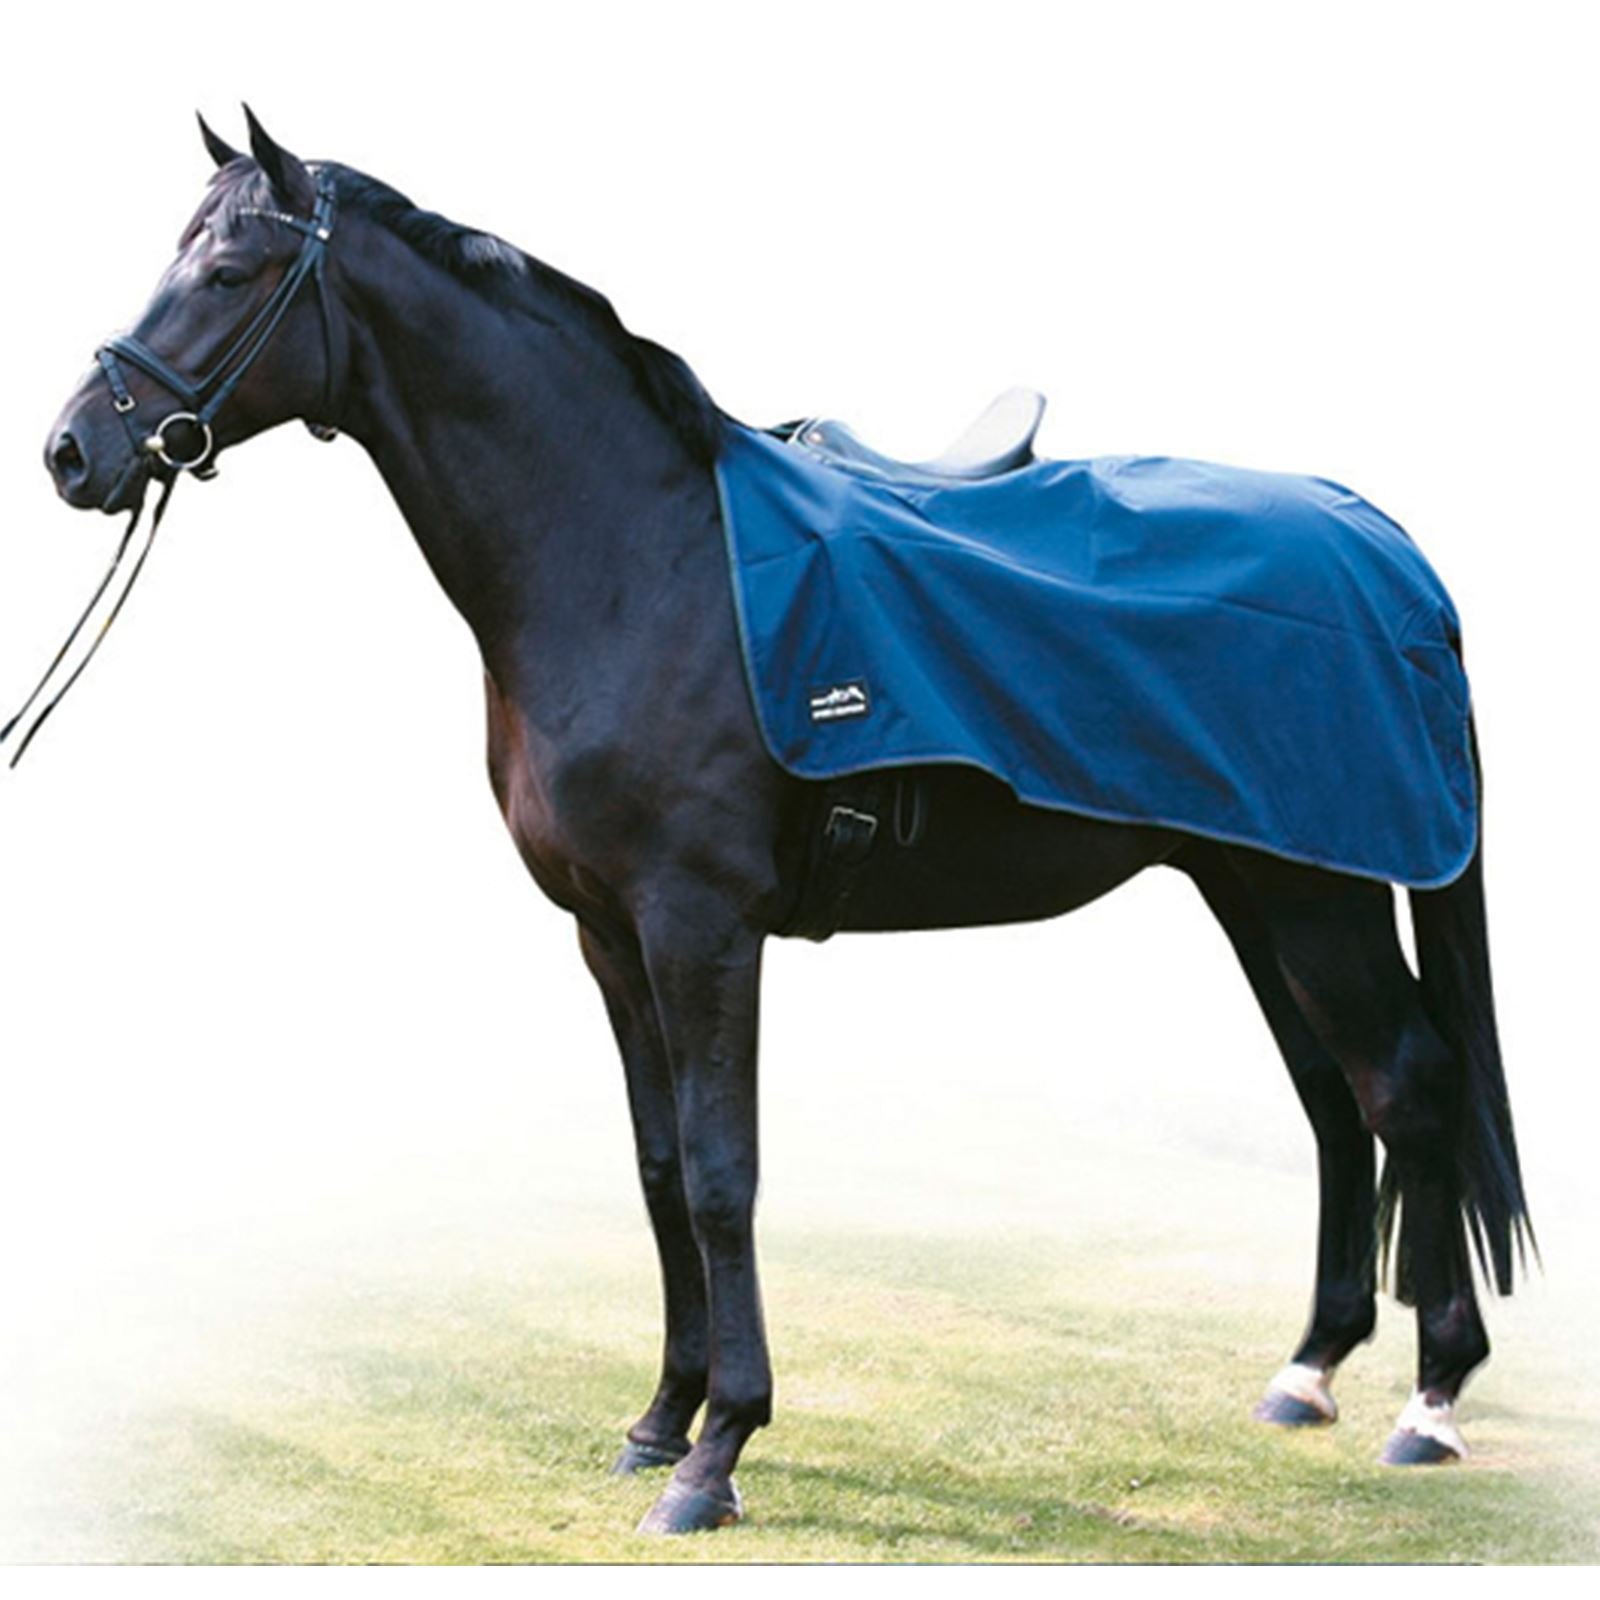 HKM Blanket Waterproof Exercise Sheet Breathable Tail Strap Horse Protection Blanket HKM 52553d